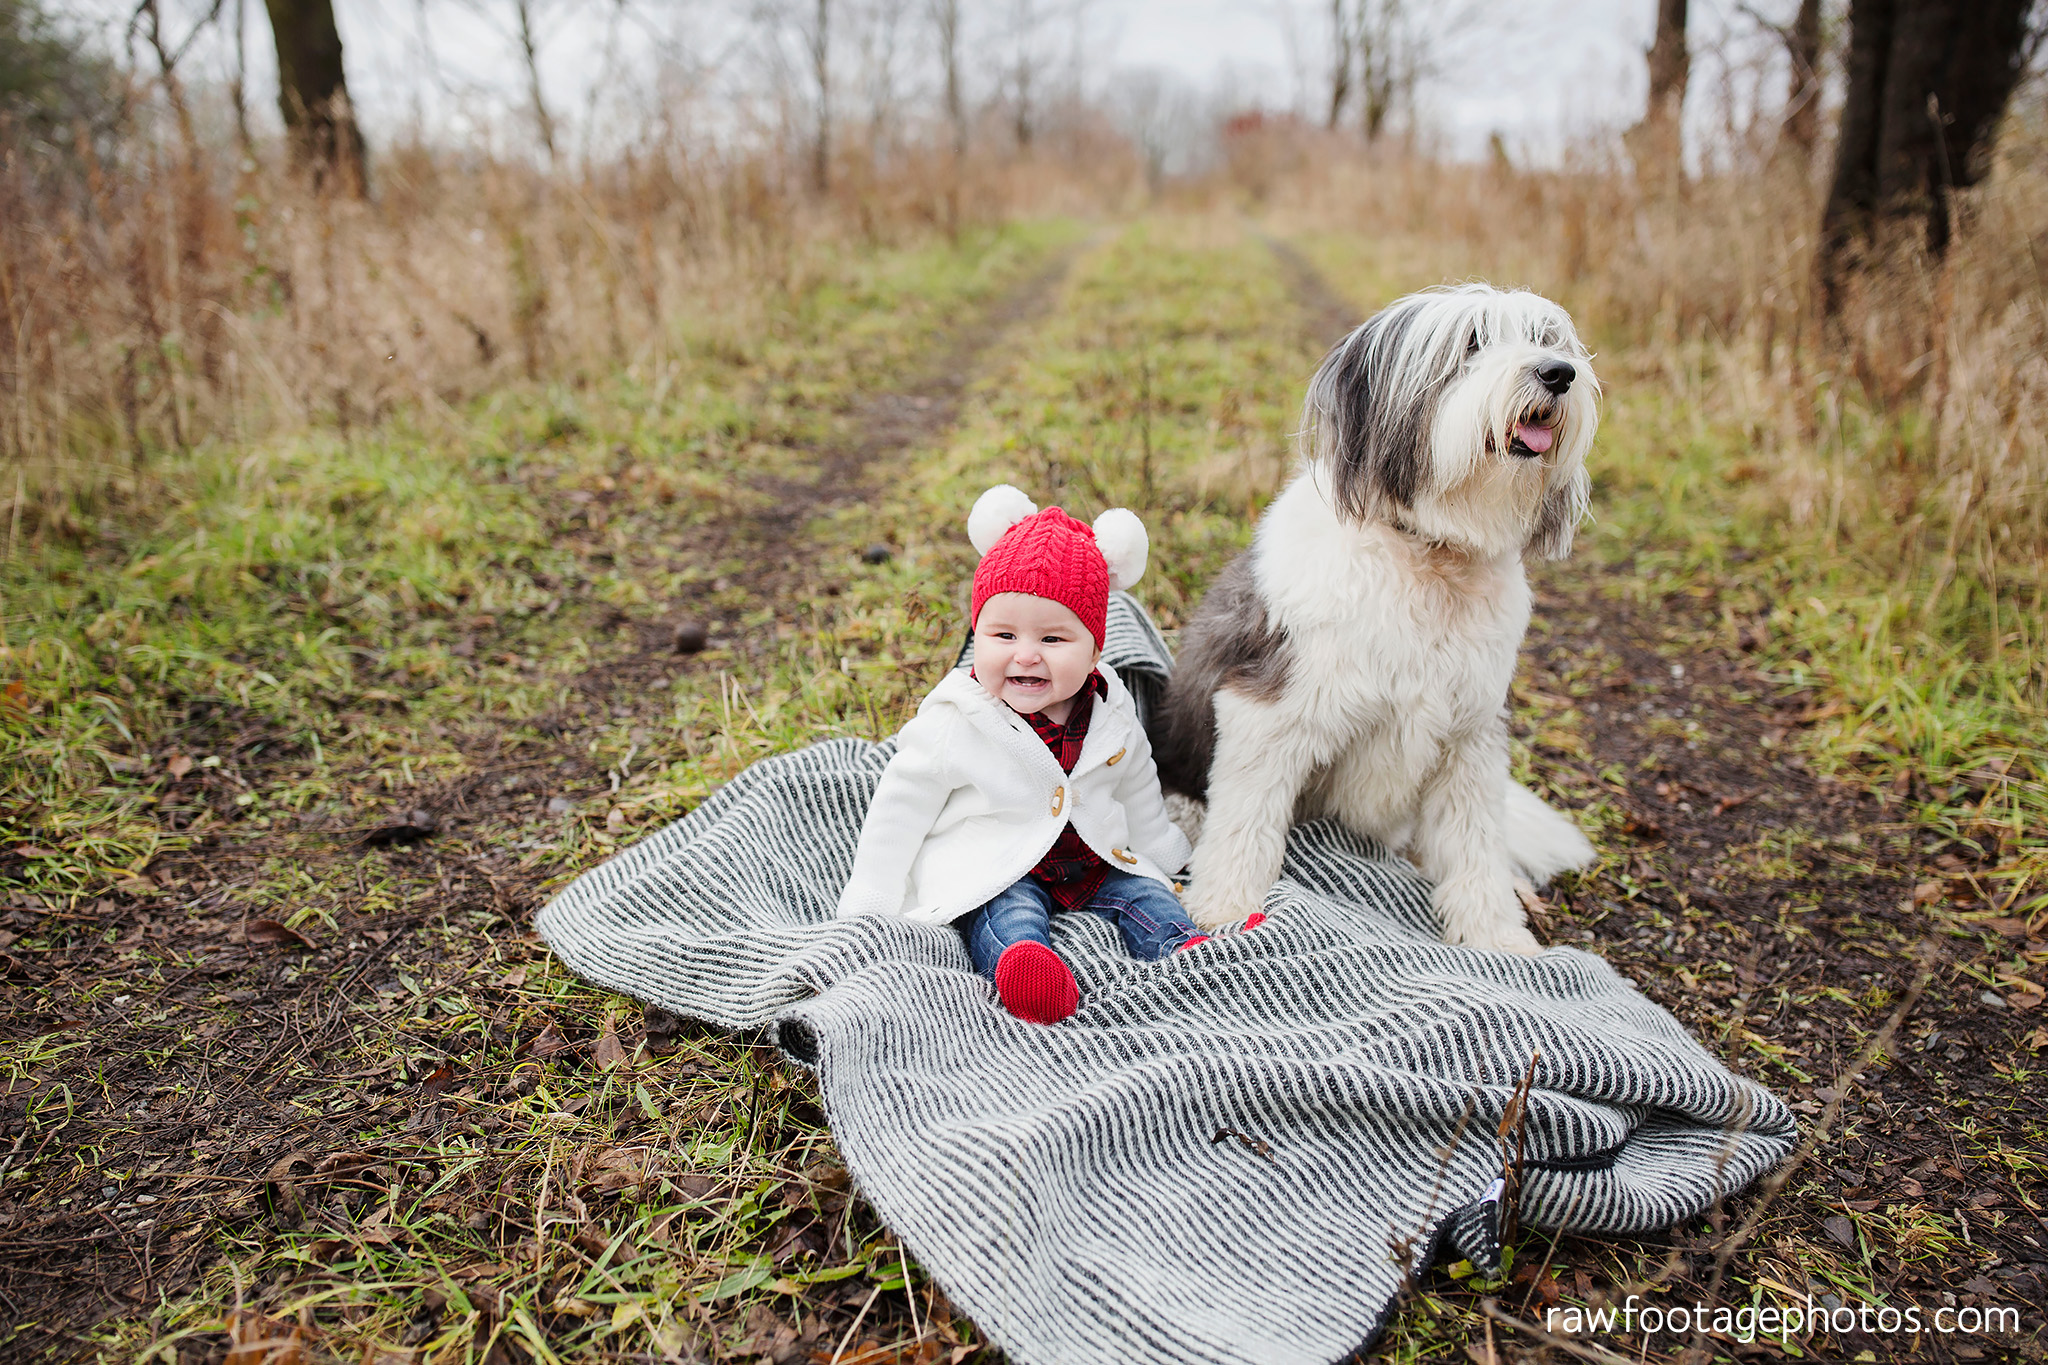 london_ontario_family_session_greenhouse-train_bridge-baby_girl-dog-raw_footage_photography011.jpg